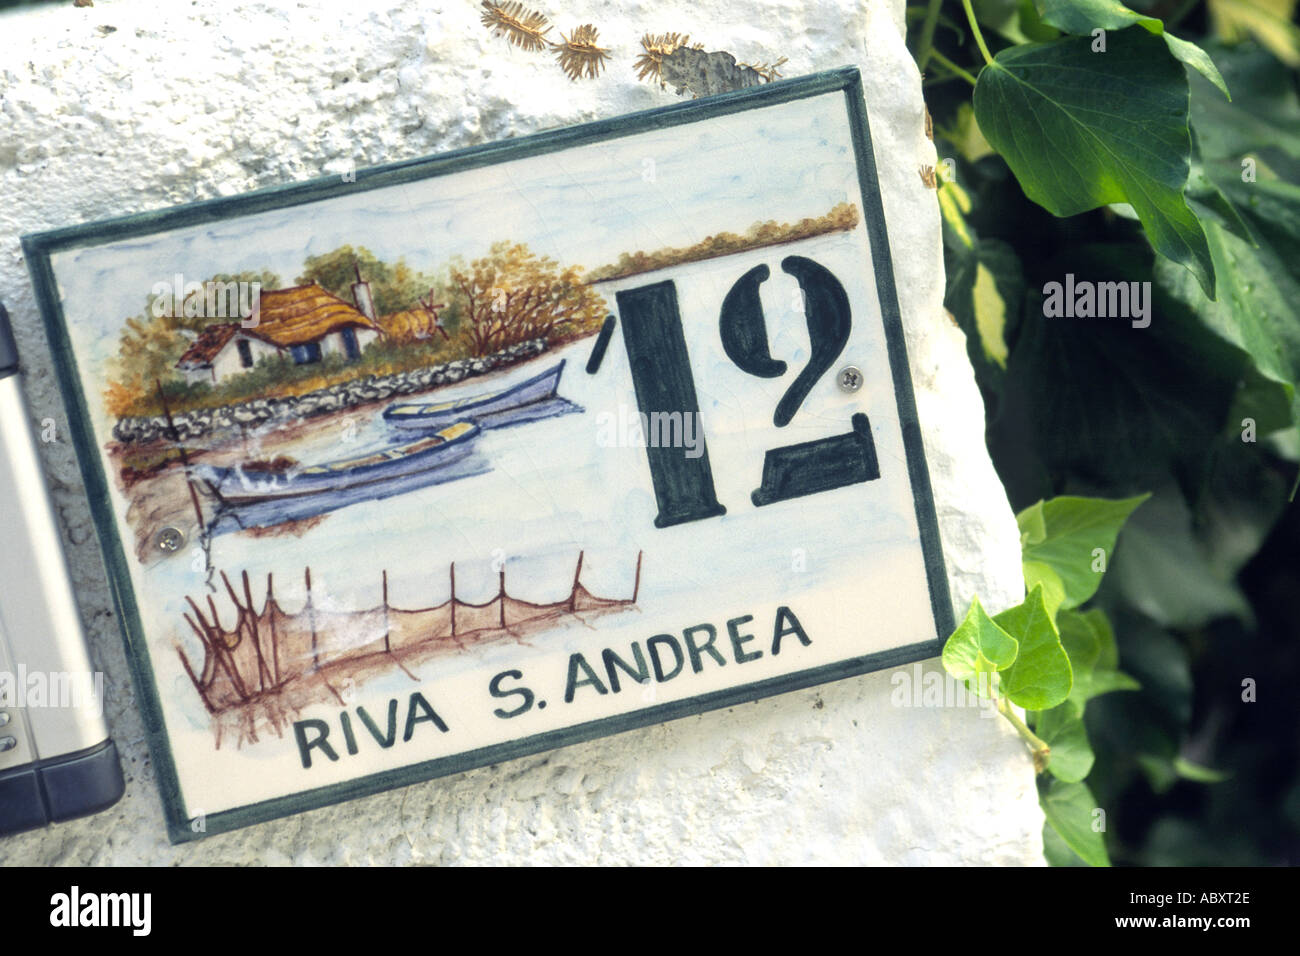 A decorative address plaque on a house in Grado, Italy. - Stock Image